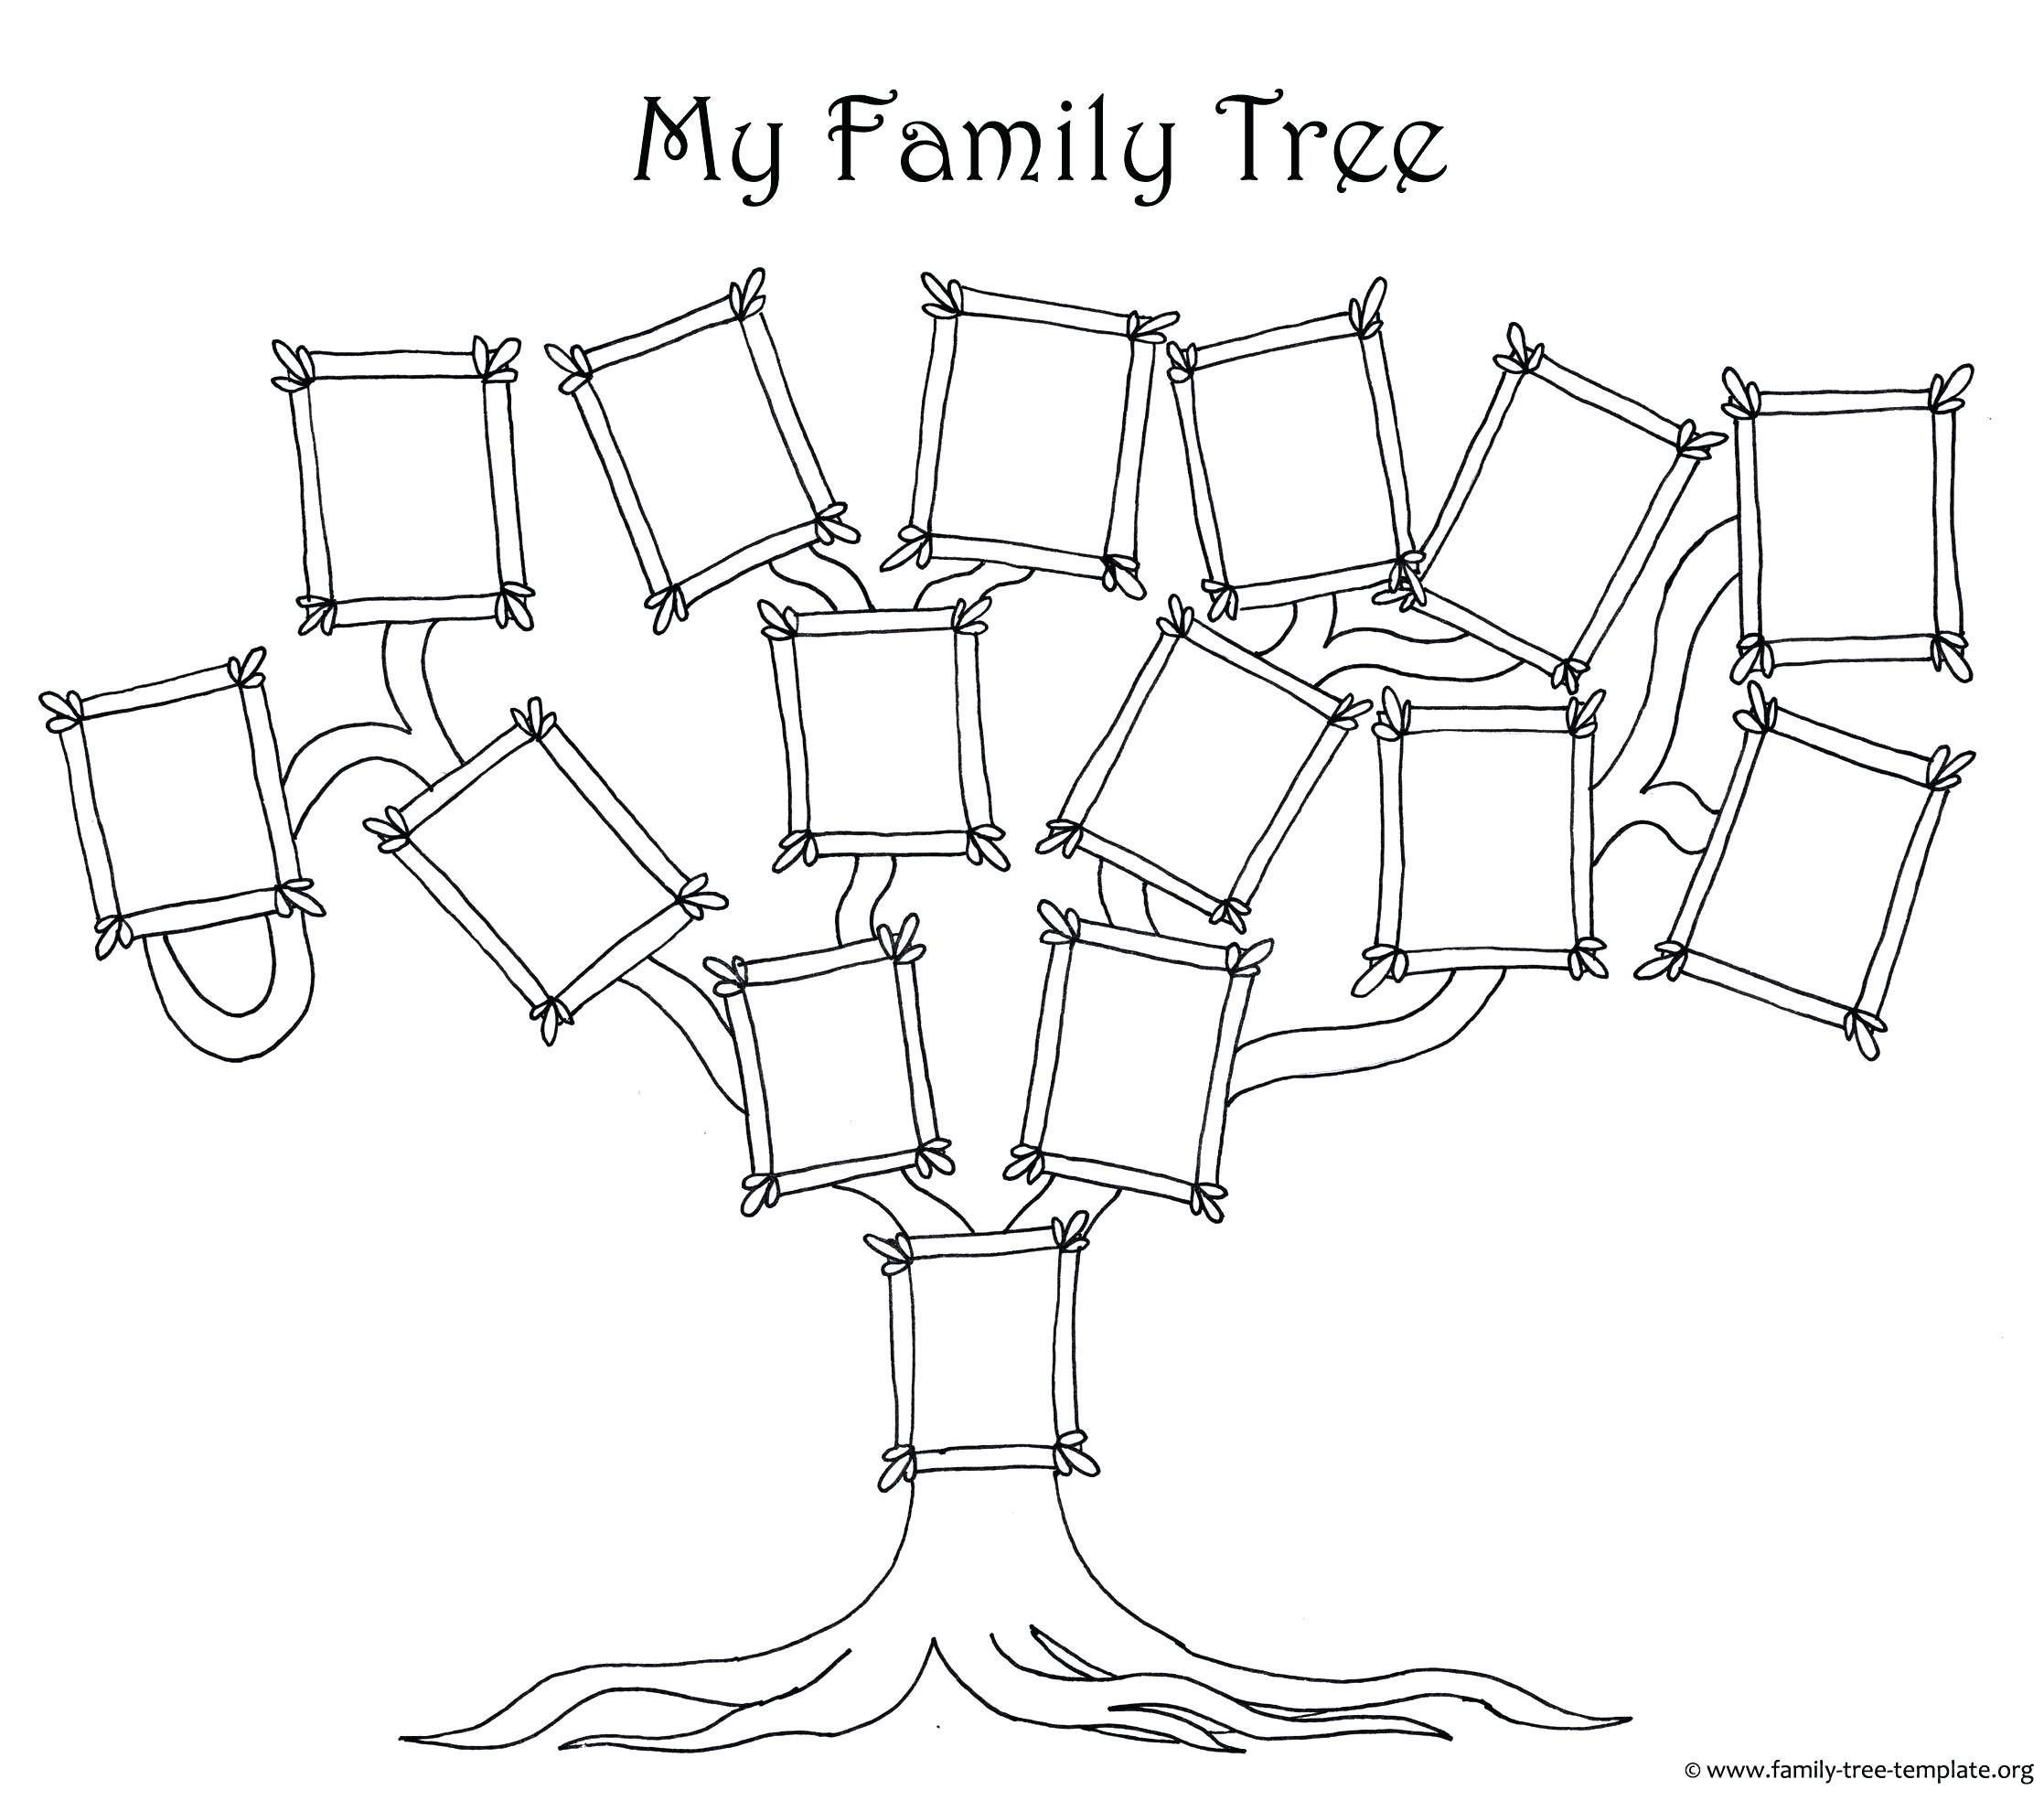 Unique Family Tree Word Template Xls Xlsformat